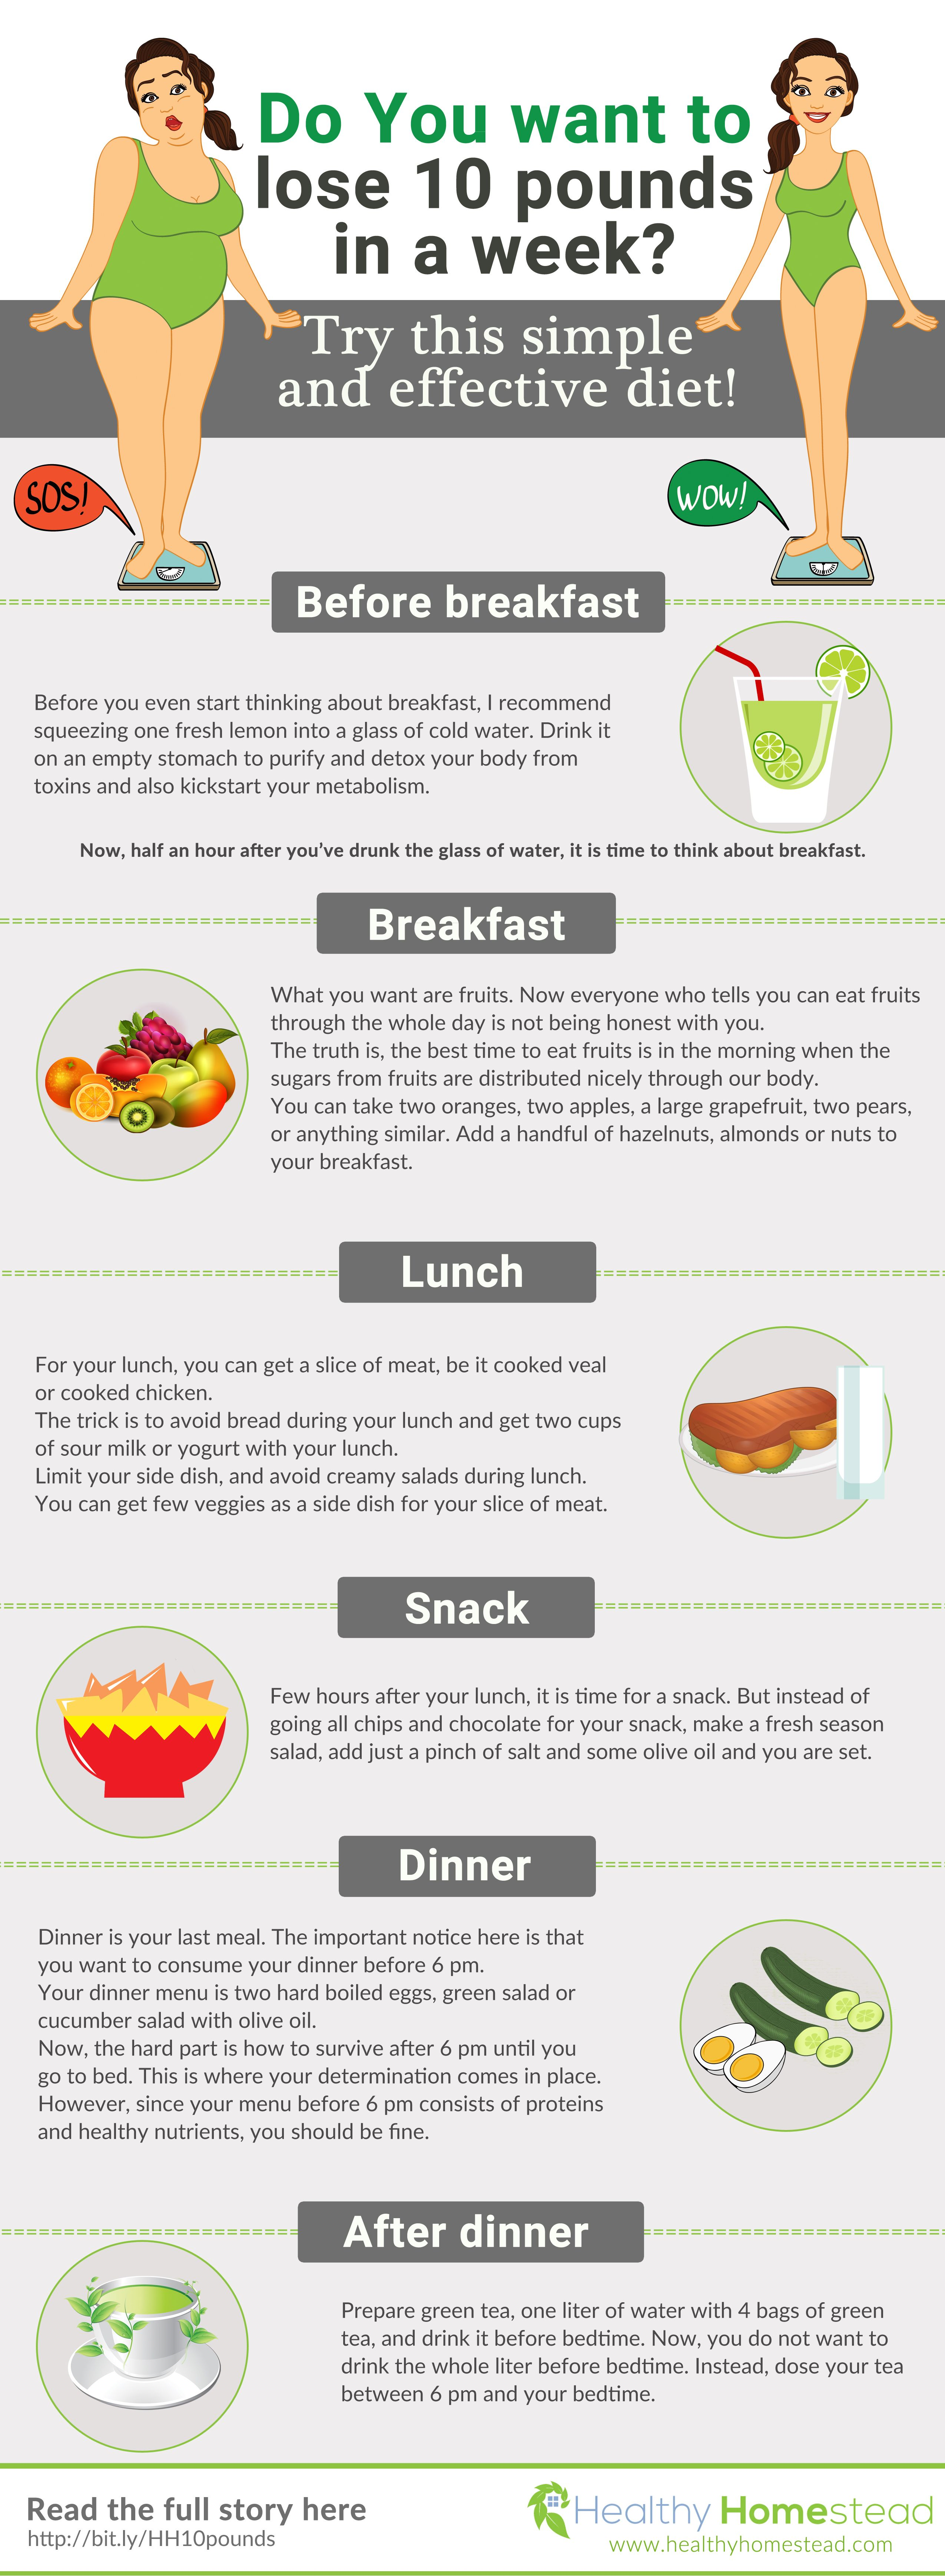 How To Lose 10 Pounds In A Week Fast 2018 Diet Plan